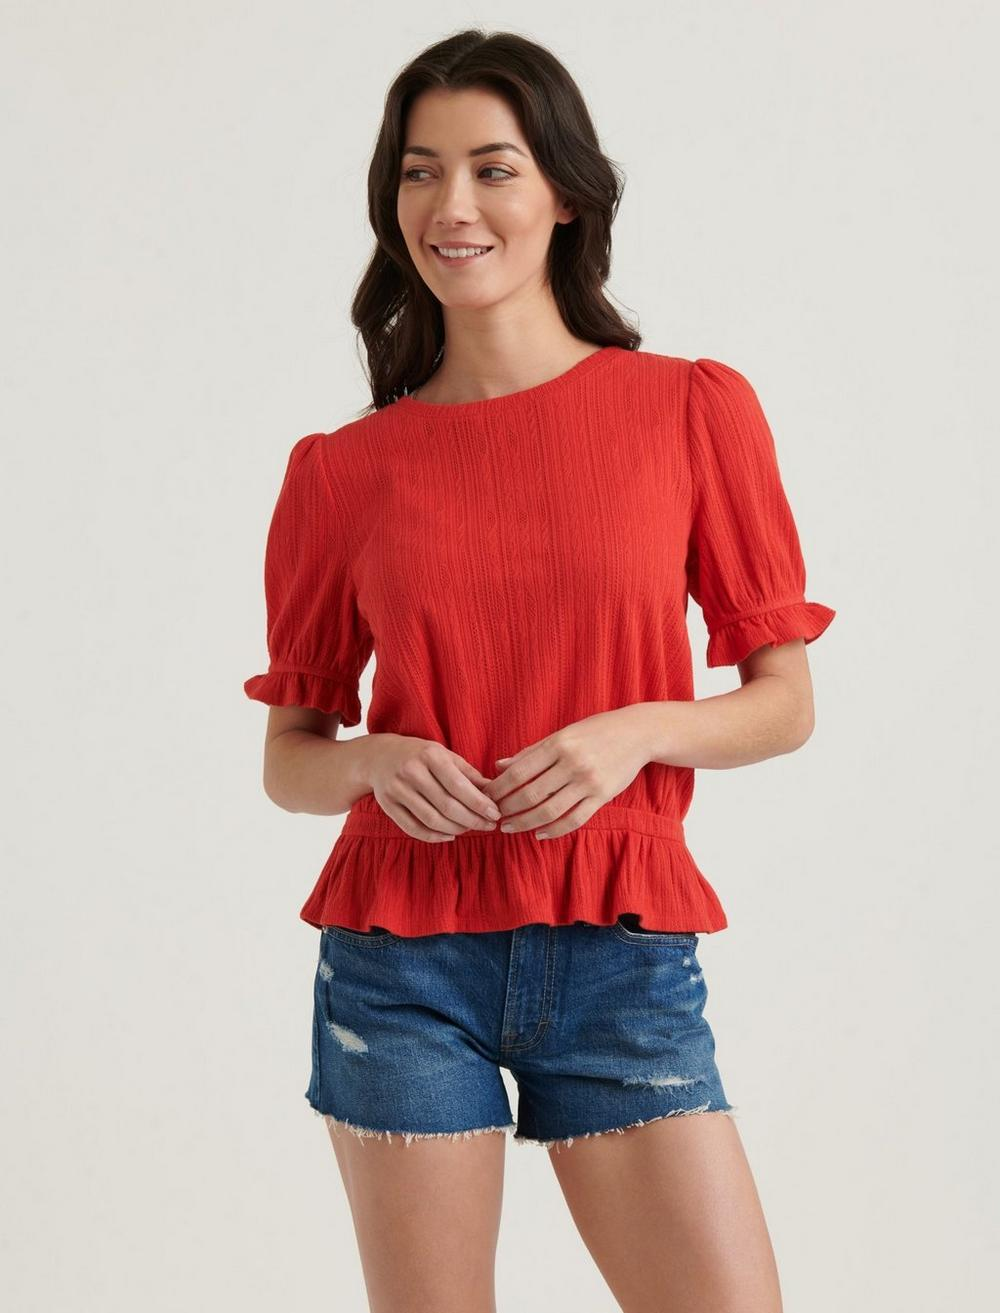 POINTELLE KNIT BANDED TOP, image 1